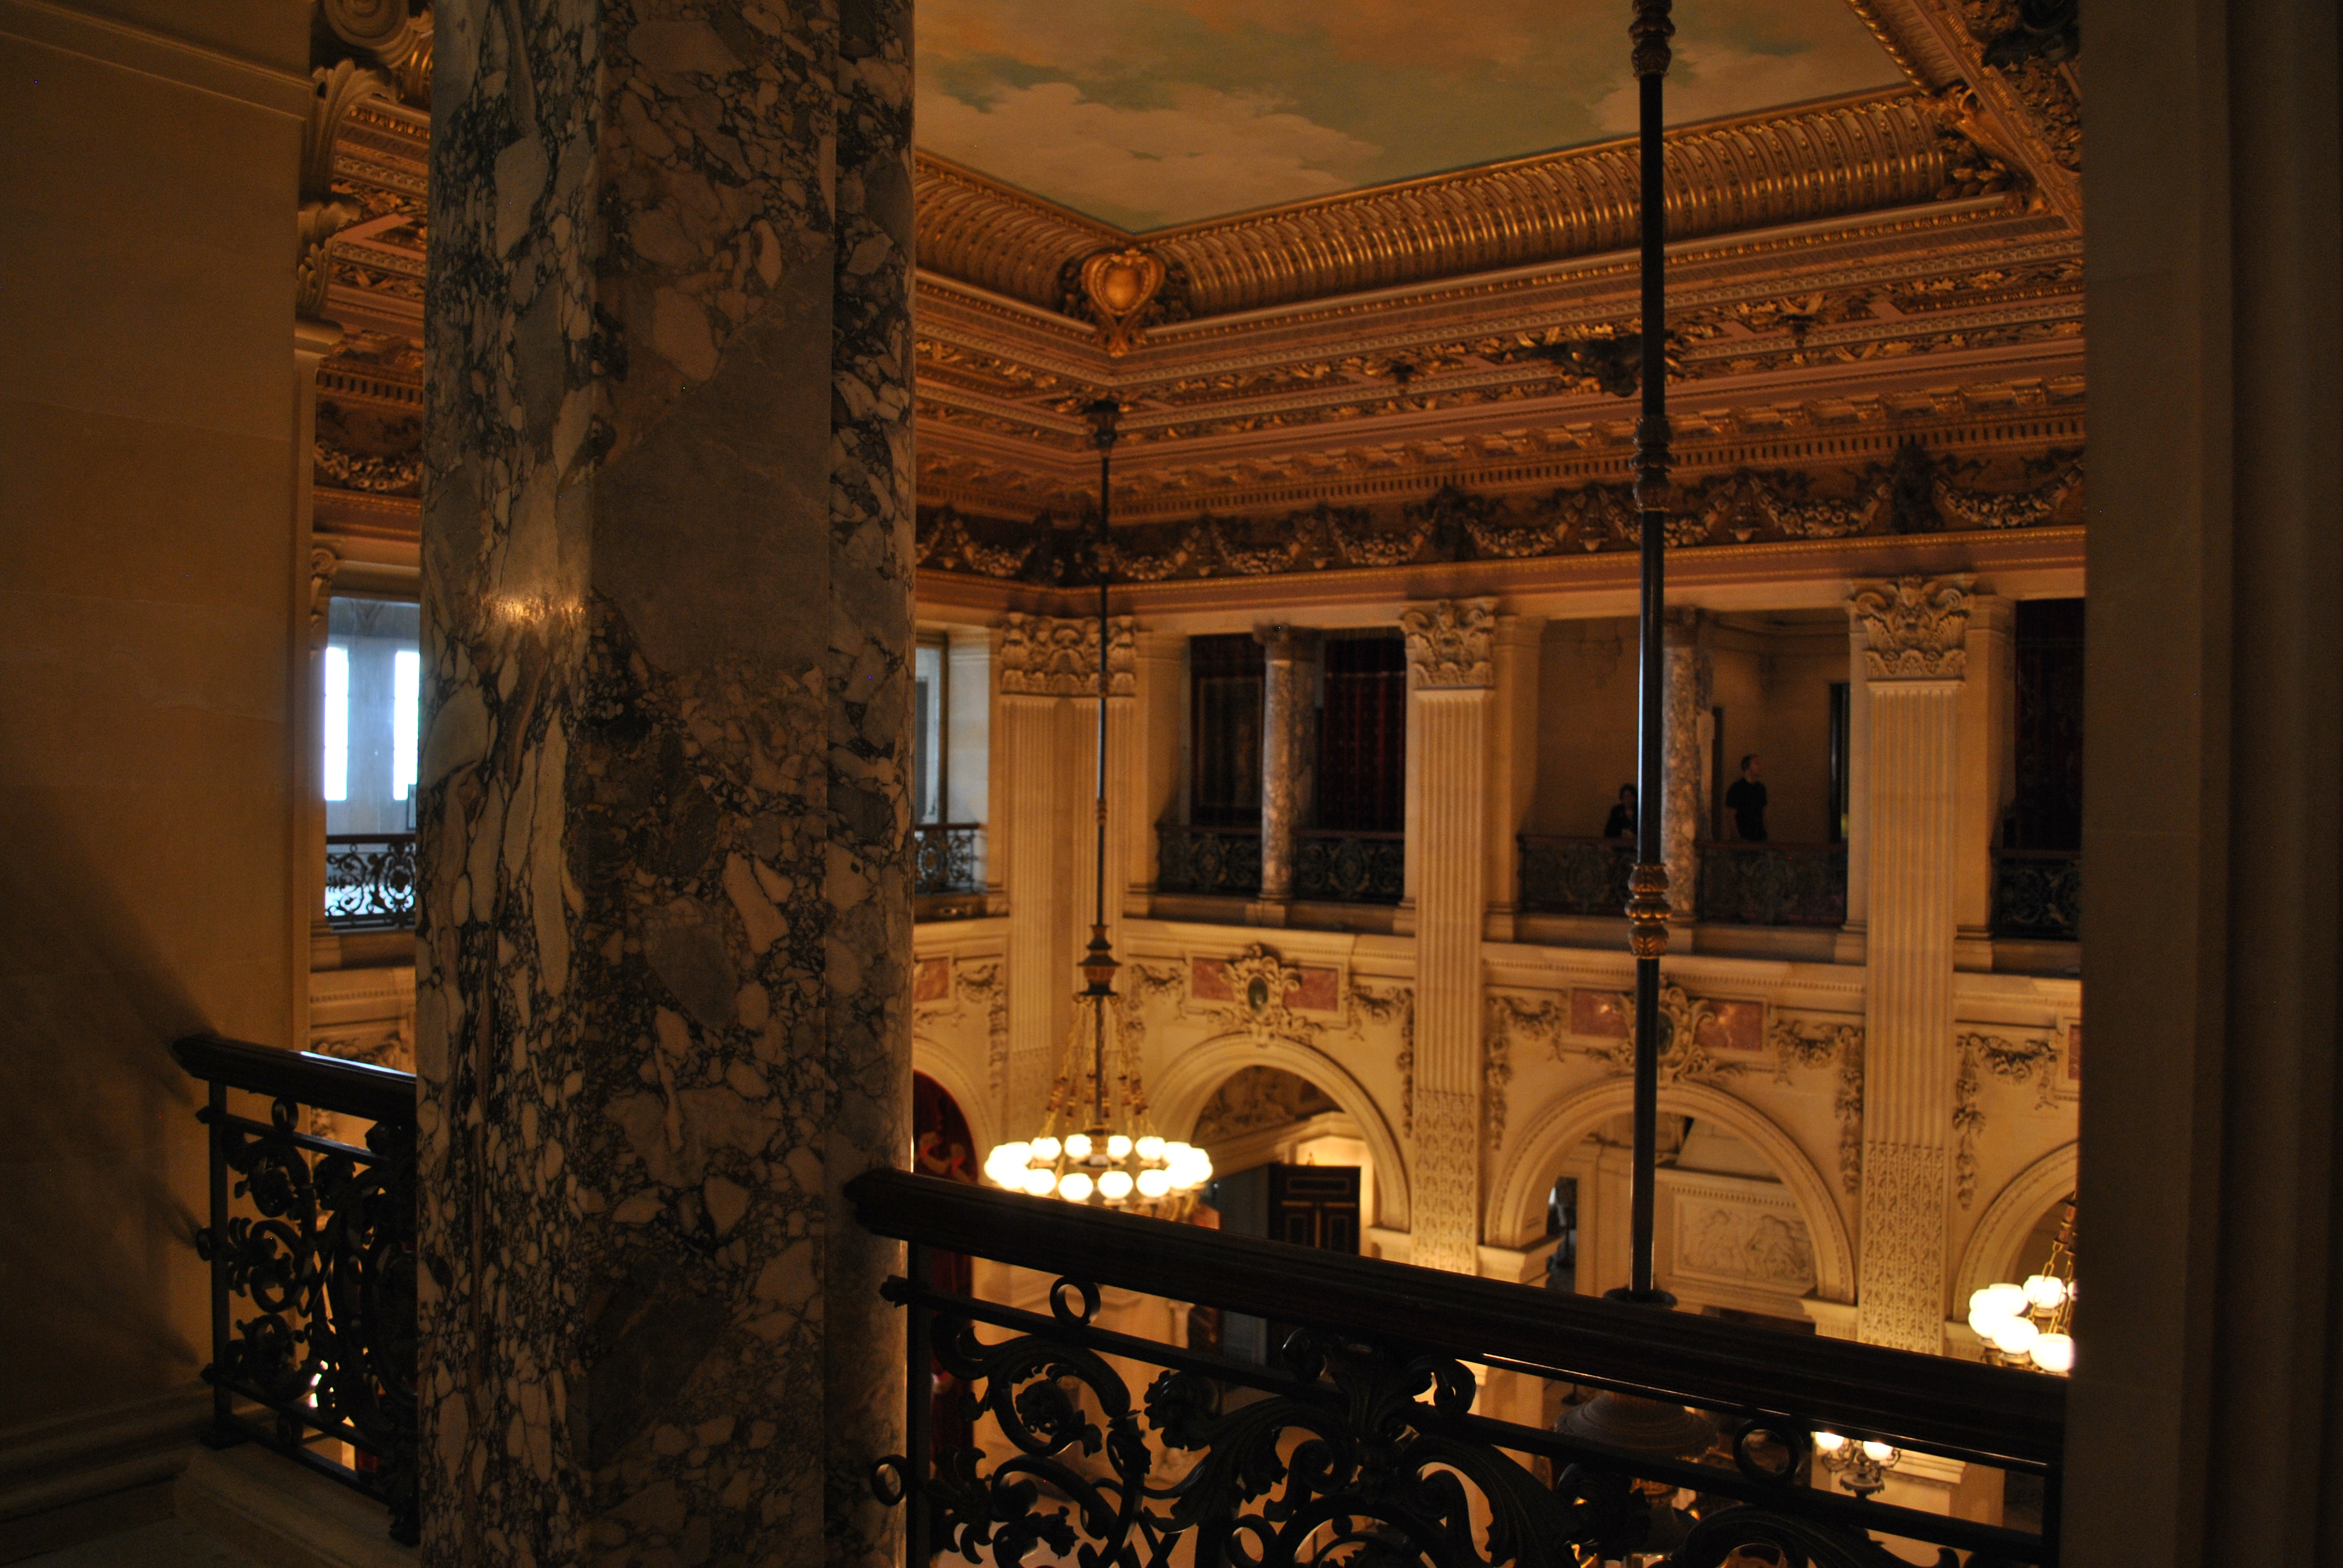 Breakers great hall from second floor | lunanista